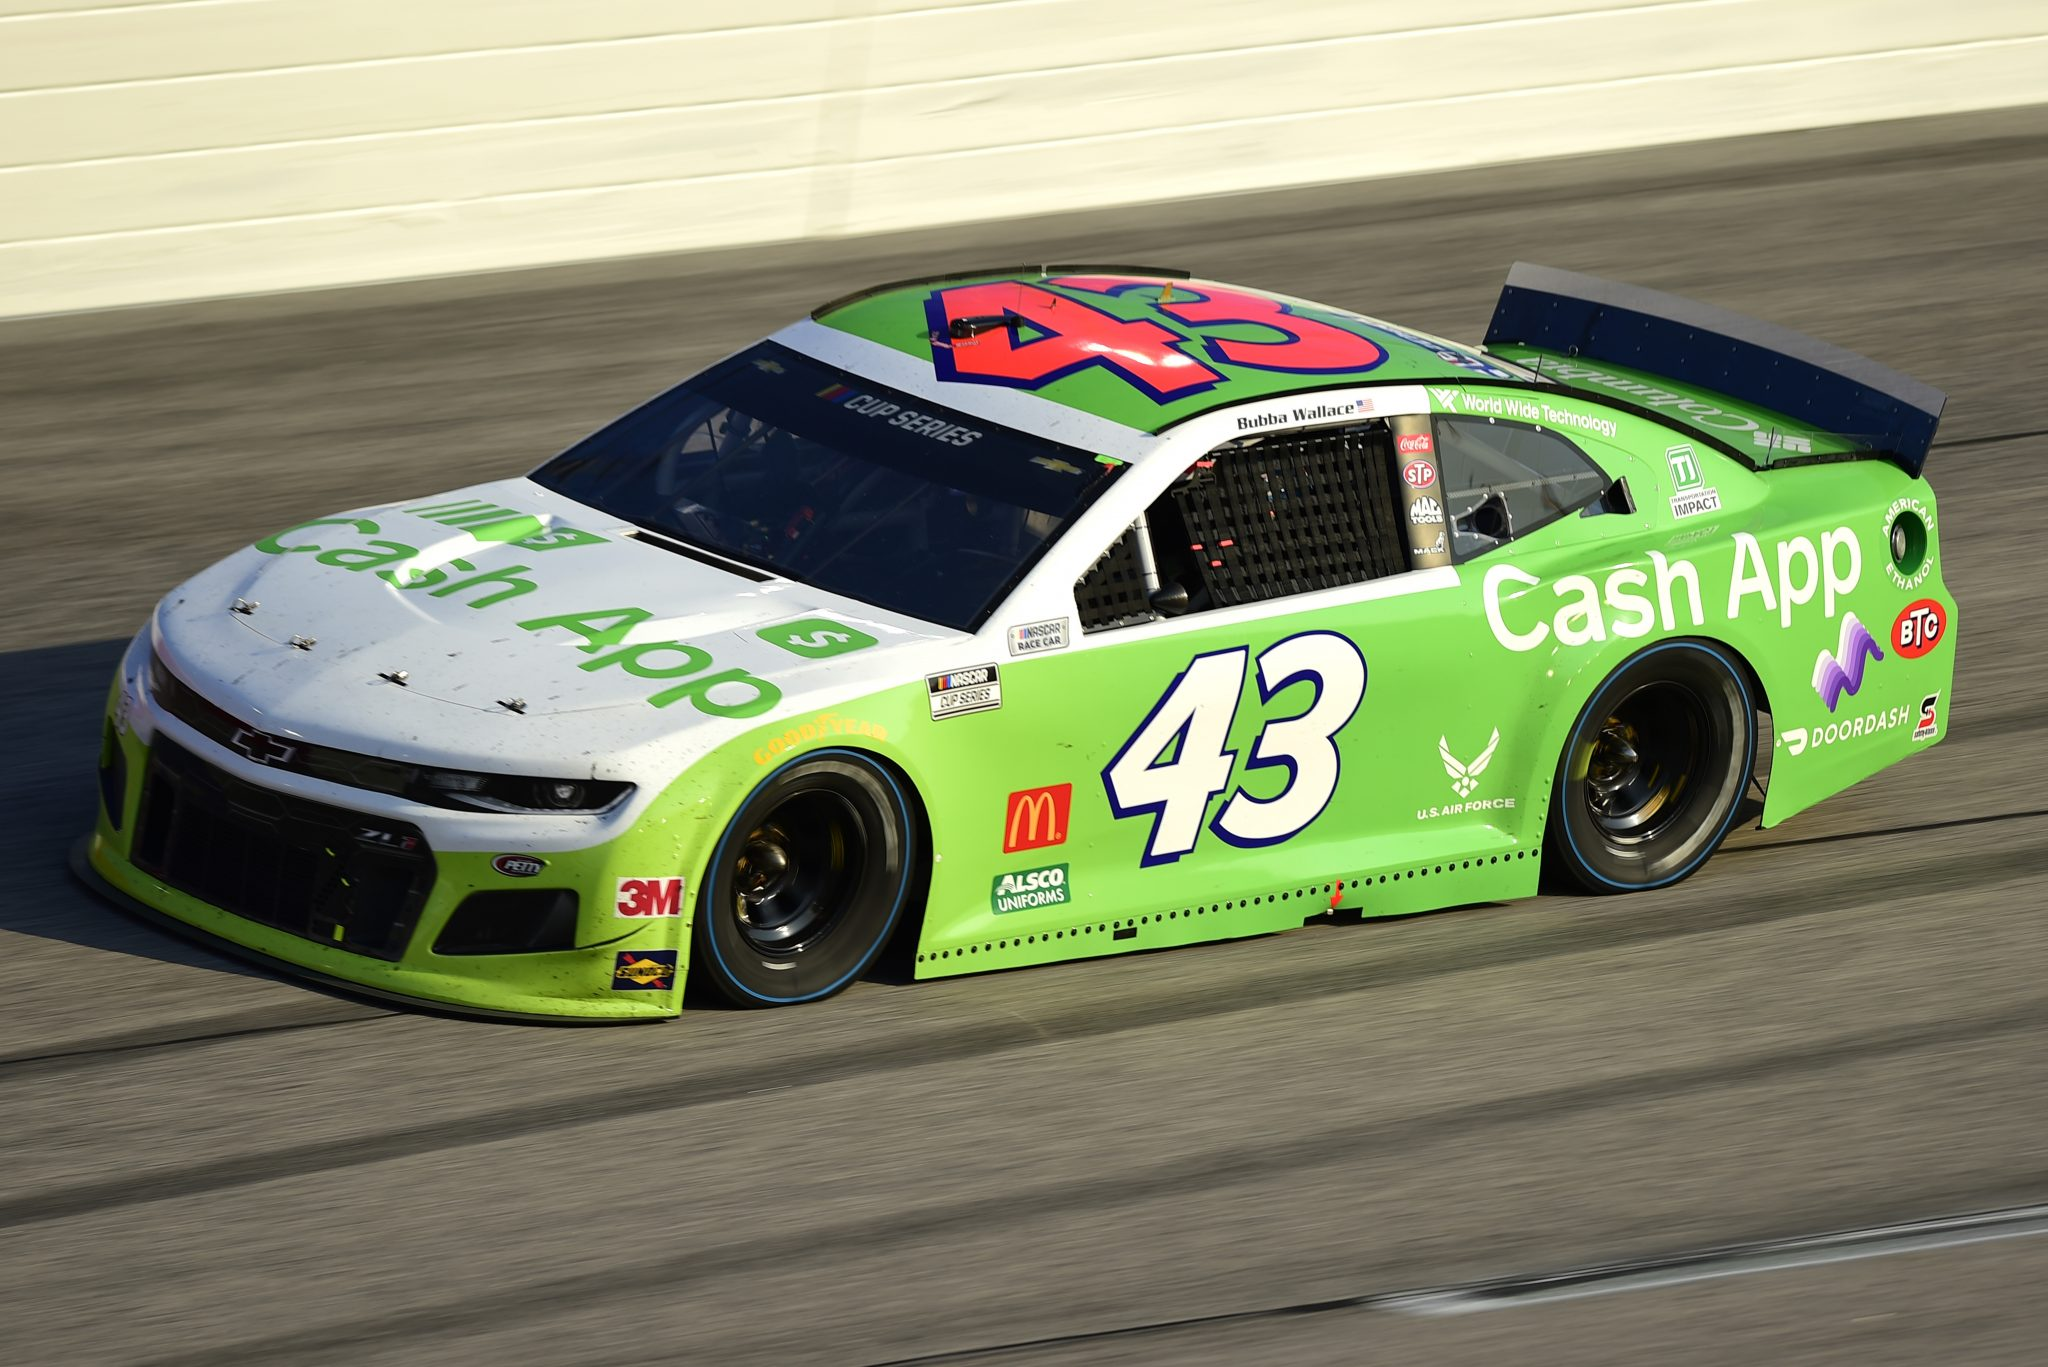 DARLINGTON, SOUTH CAROLINA - SEPTEMBER 06: Bubba Wallace, driver of the #43 Cash App Chevrolet, drives during the NASCAR Cup Series Cook Out Southern 500 at Darlington Raceway on September 06, 2020 in Darlington, South Carolina. (Photo by Jared C. Tilton/Getty Images) | Getty Images